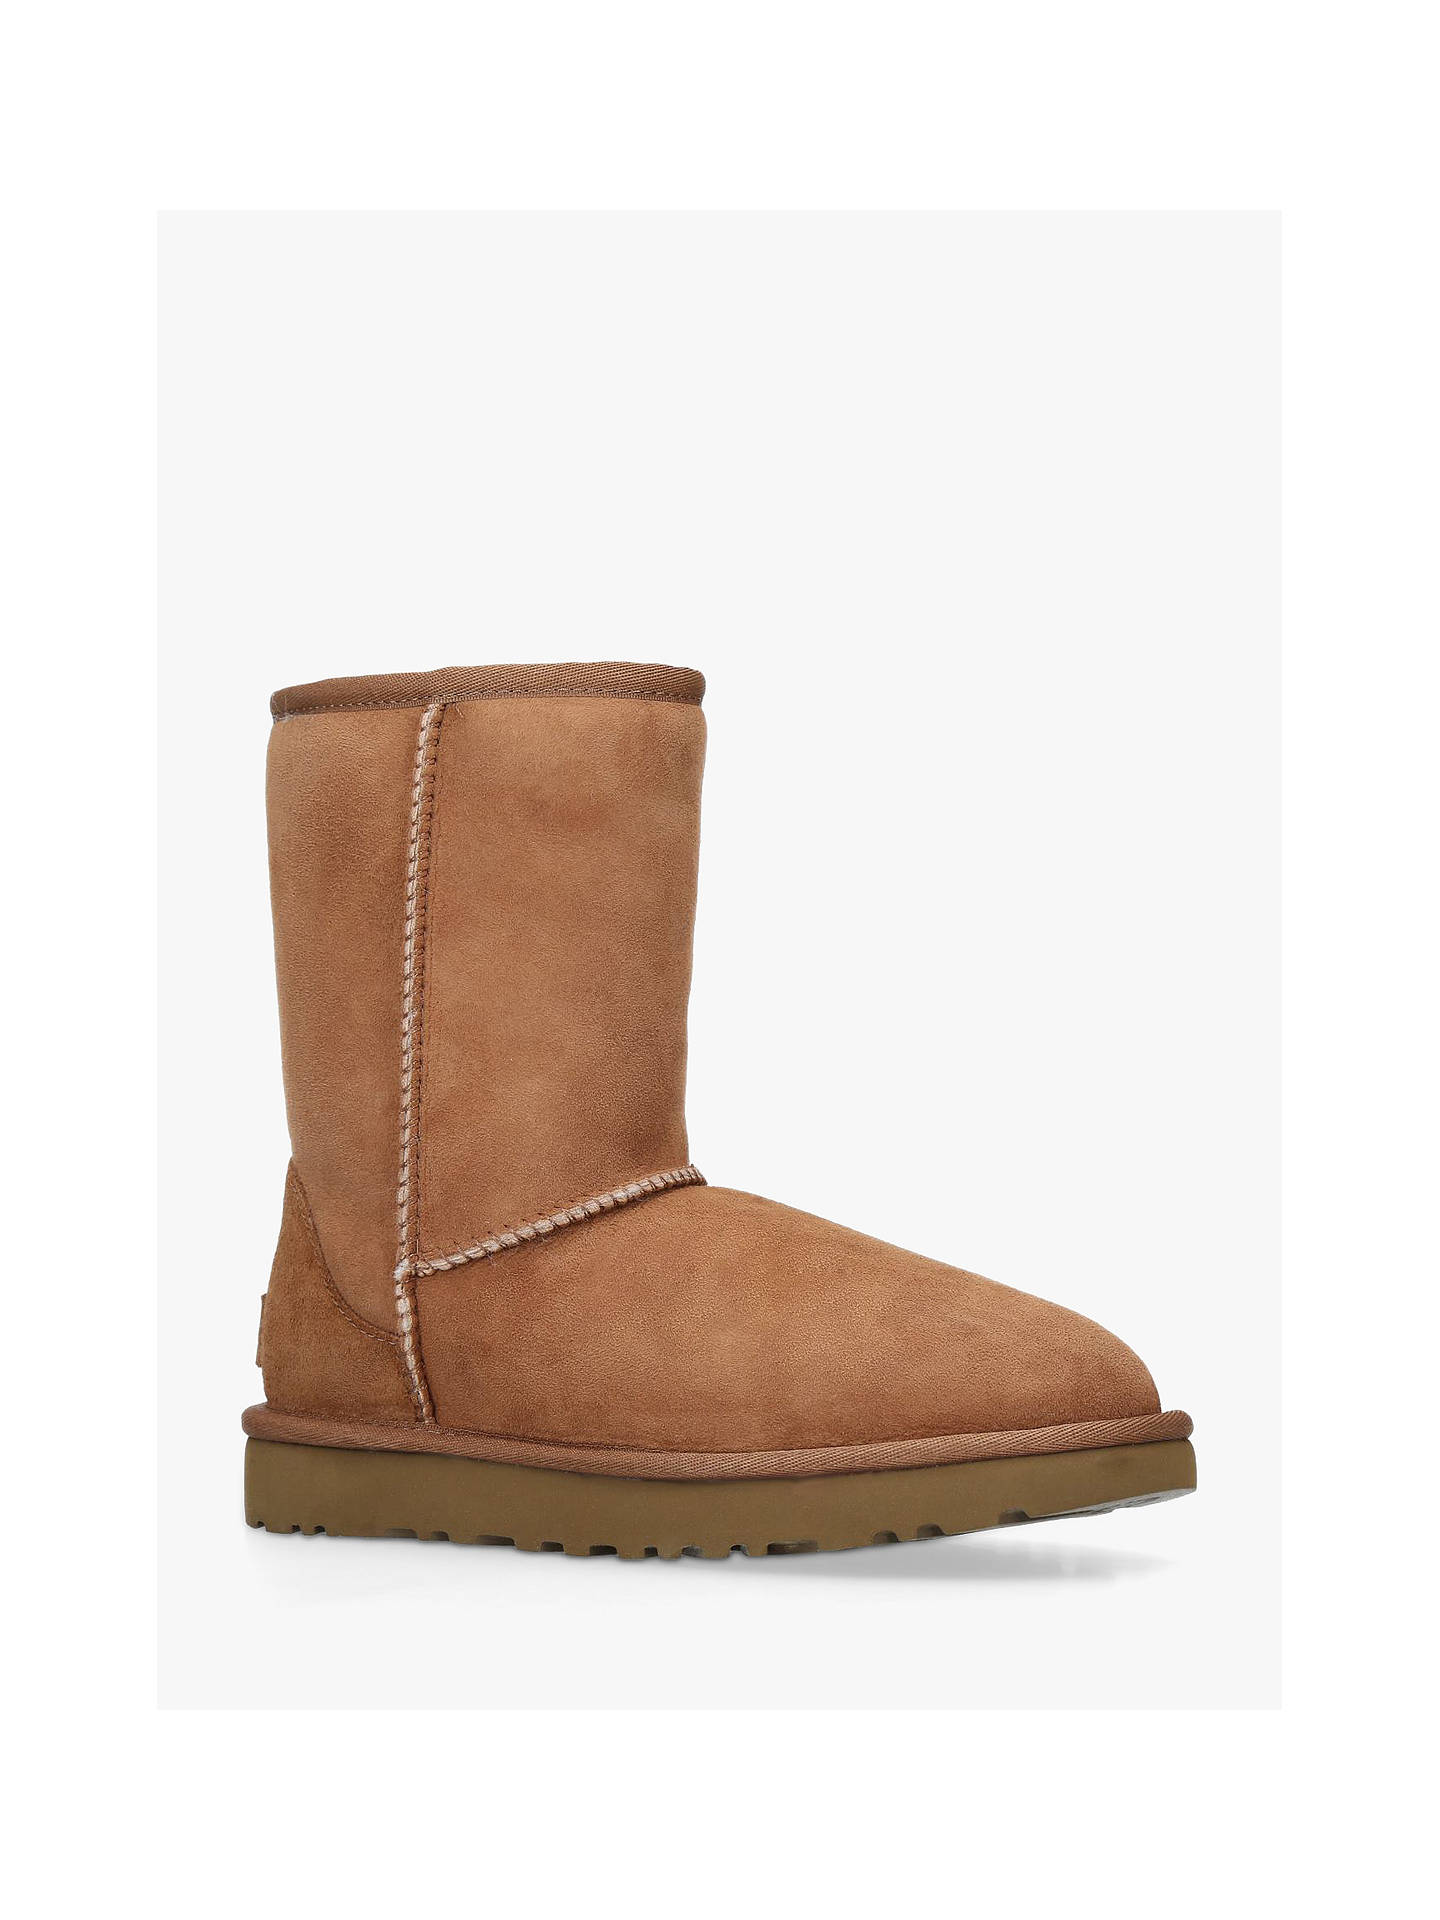 3a1bc986a2f UGG Classic II Short Sheepskin Ankle Boots, Chestnut